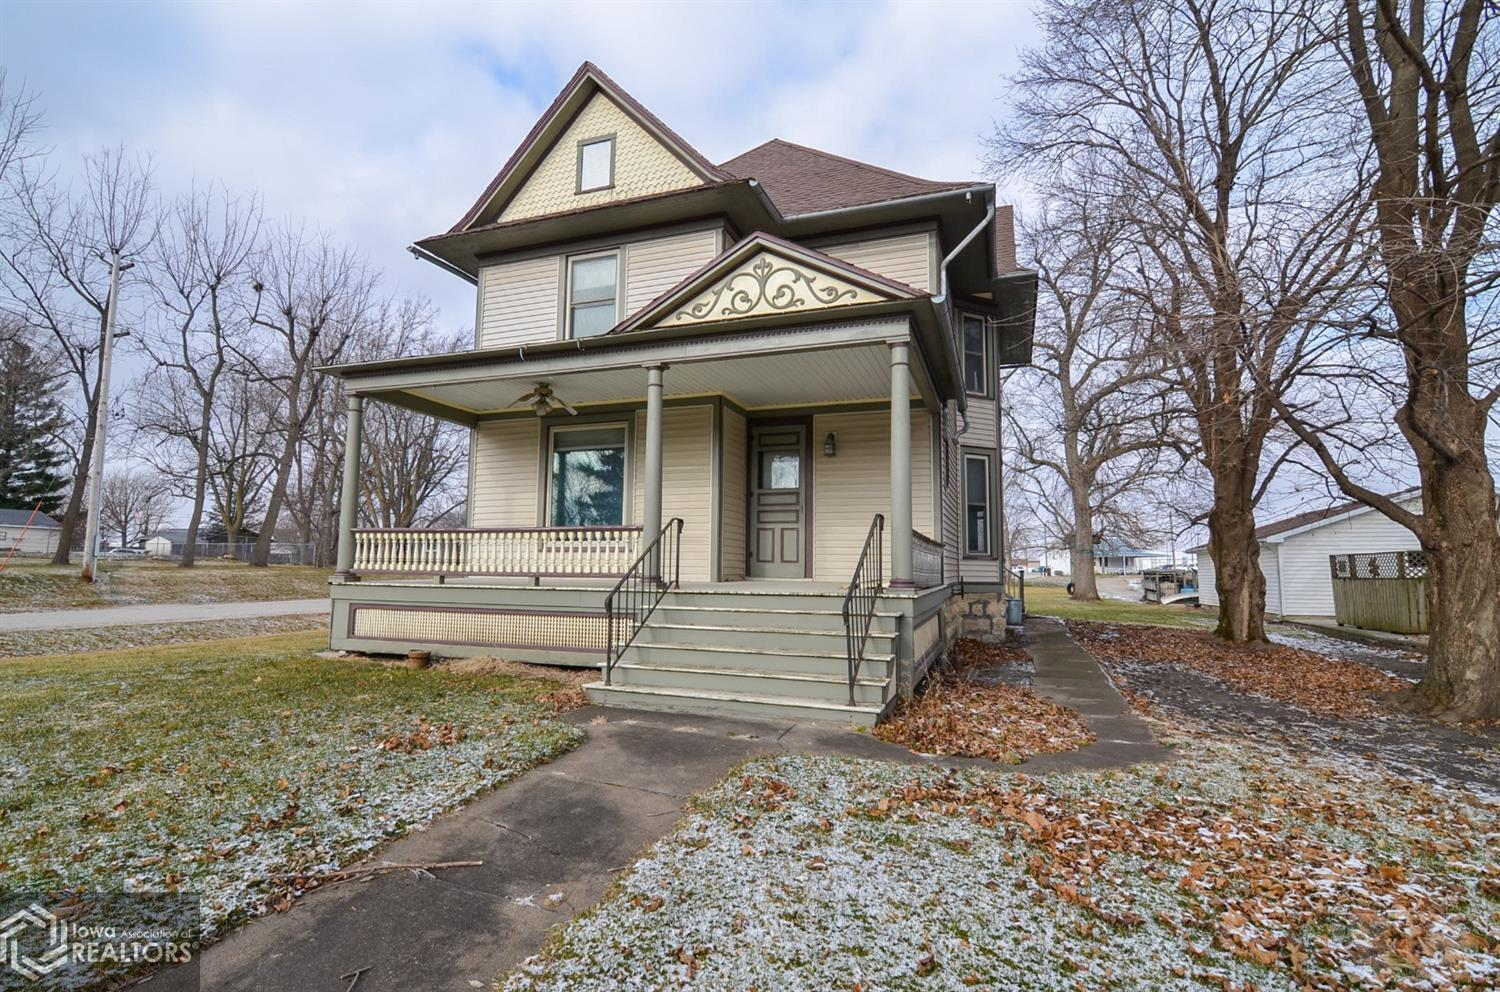 105 Jefferson, Montezuma, Iowa 50171, 3 Bedrooms Bedrooms, ,1 BathroomBathrooms,Single Family,For Sale,Jefferson,5463569